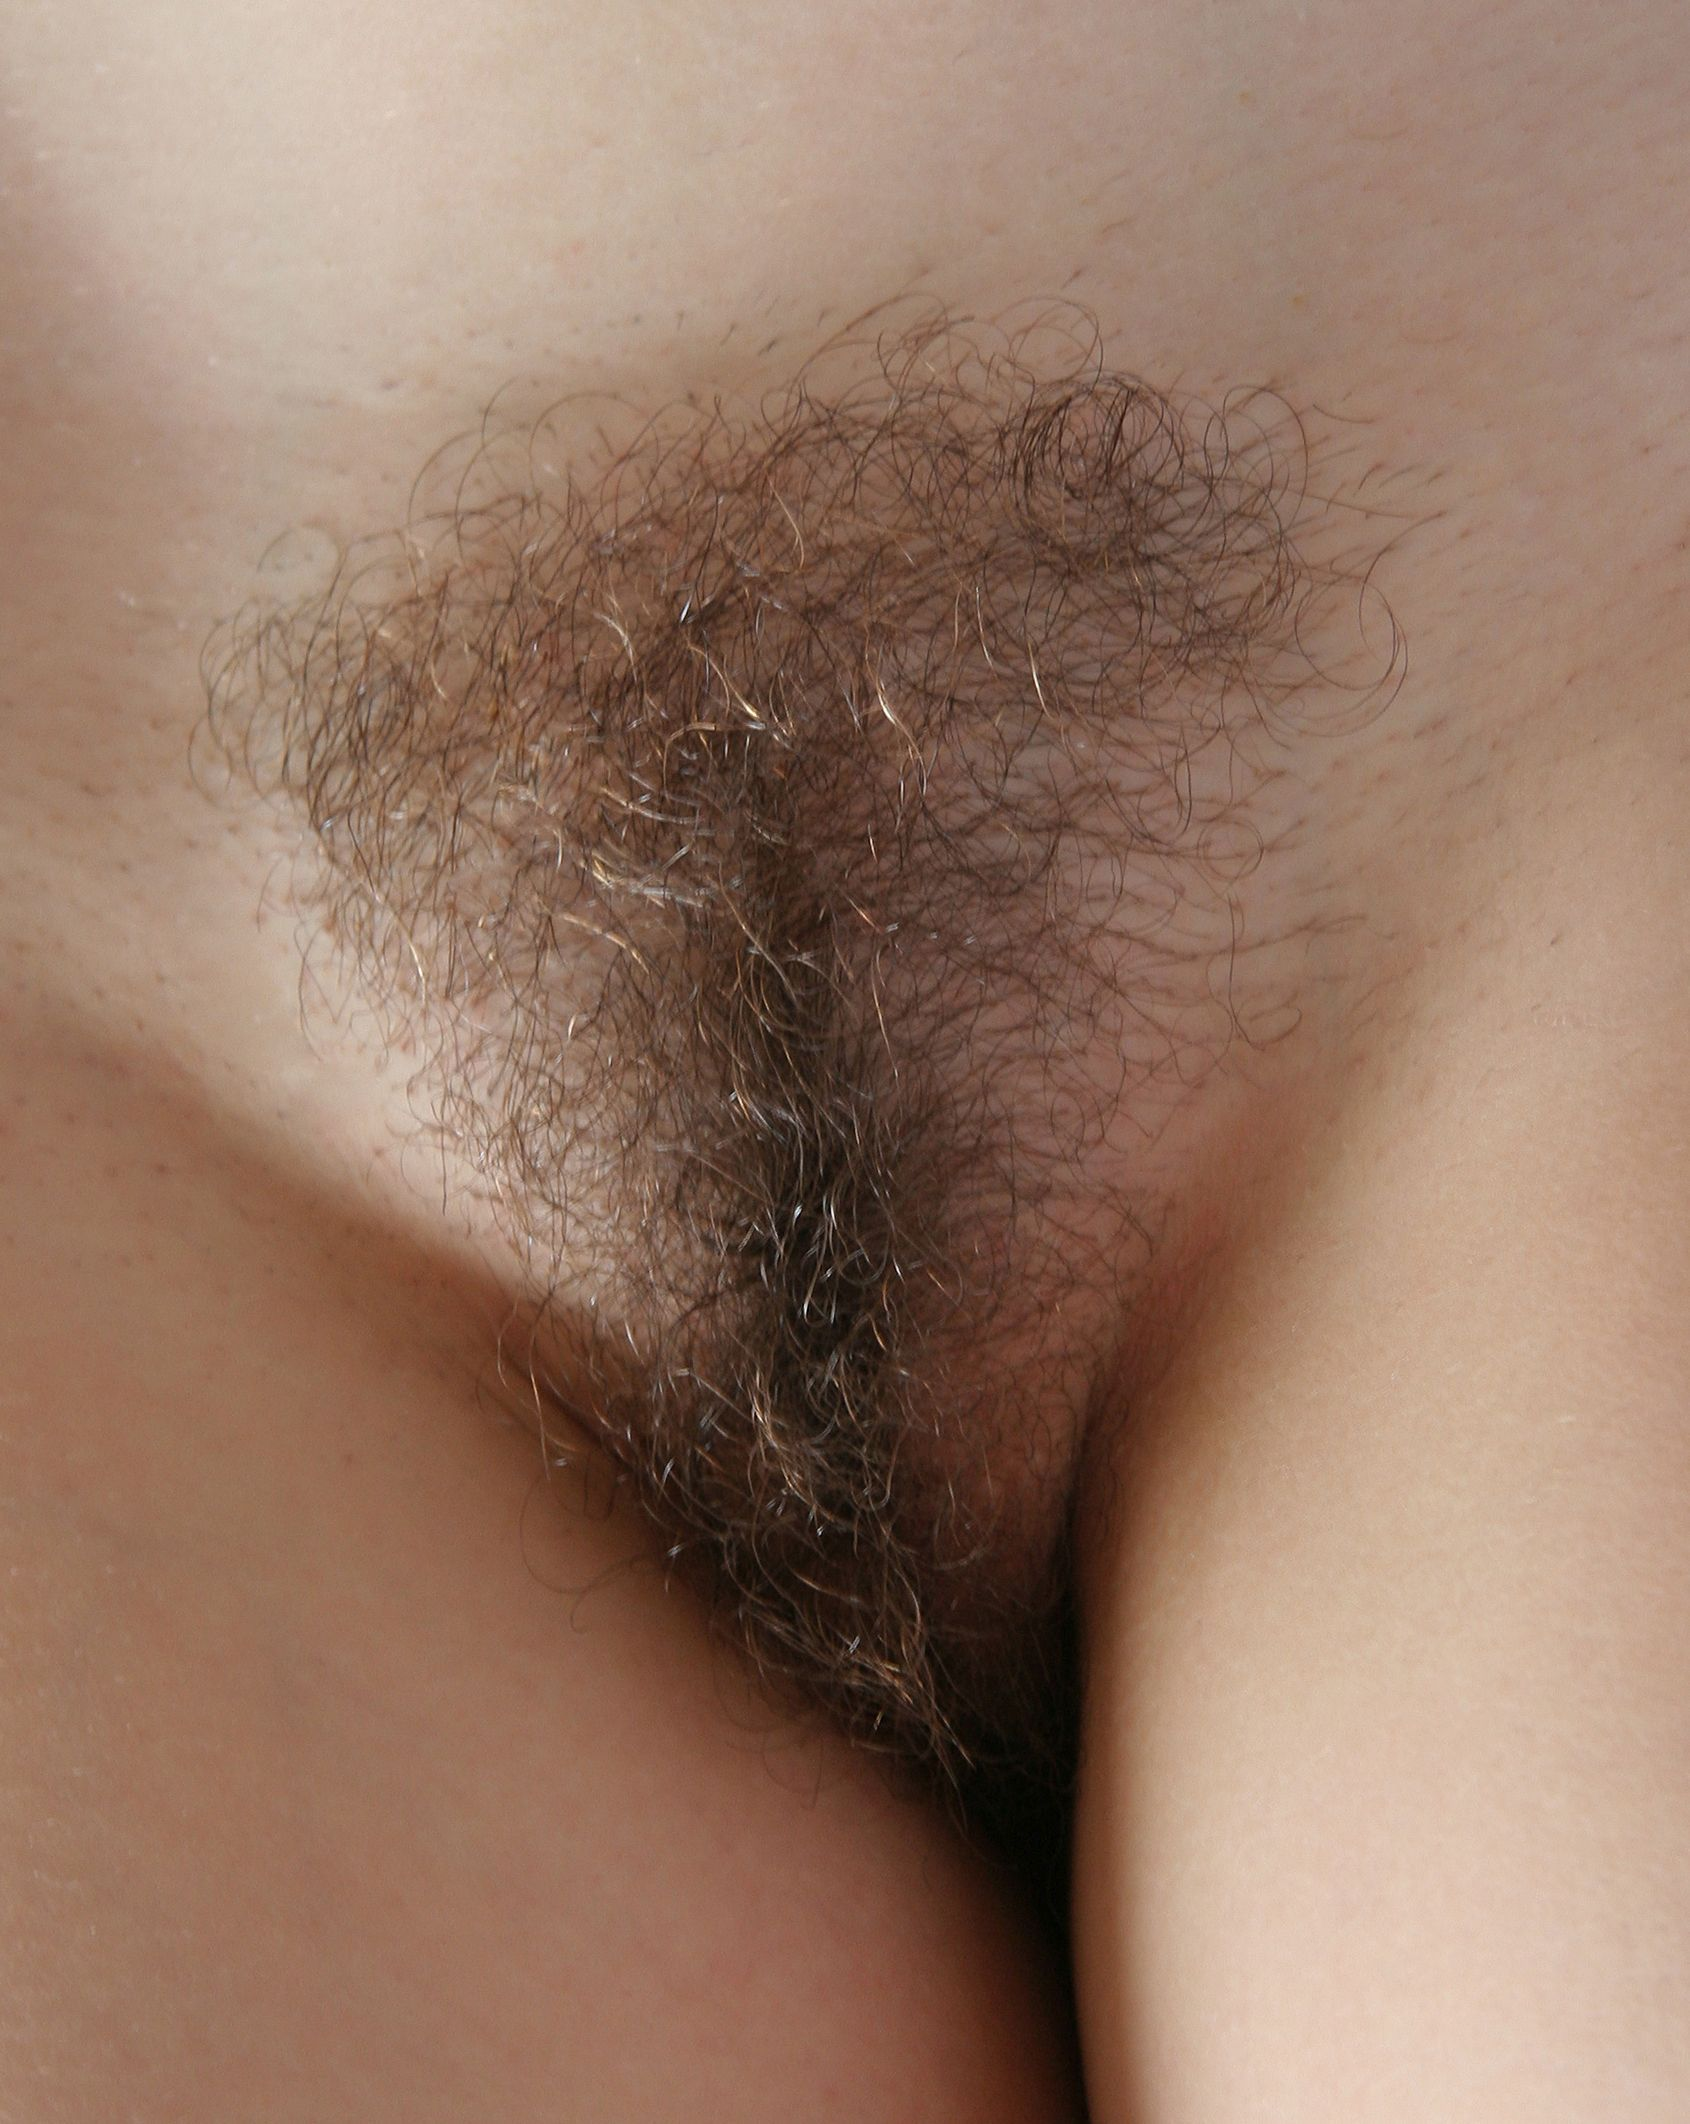 Girls with first pubic hair